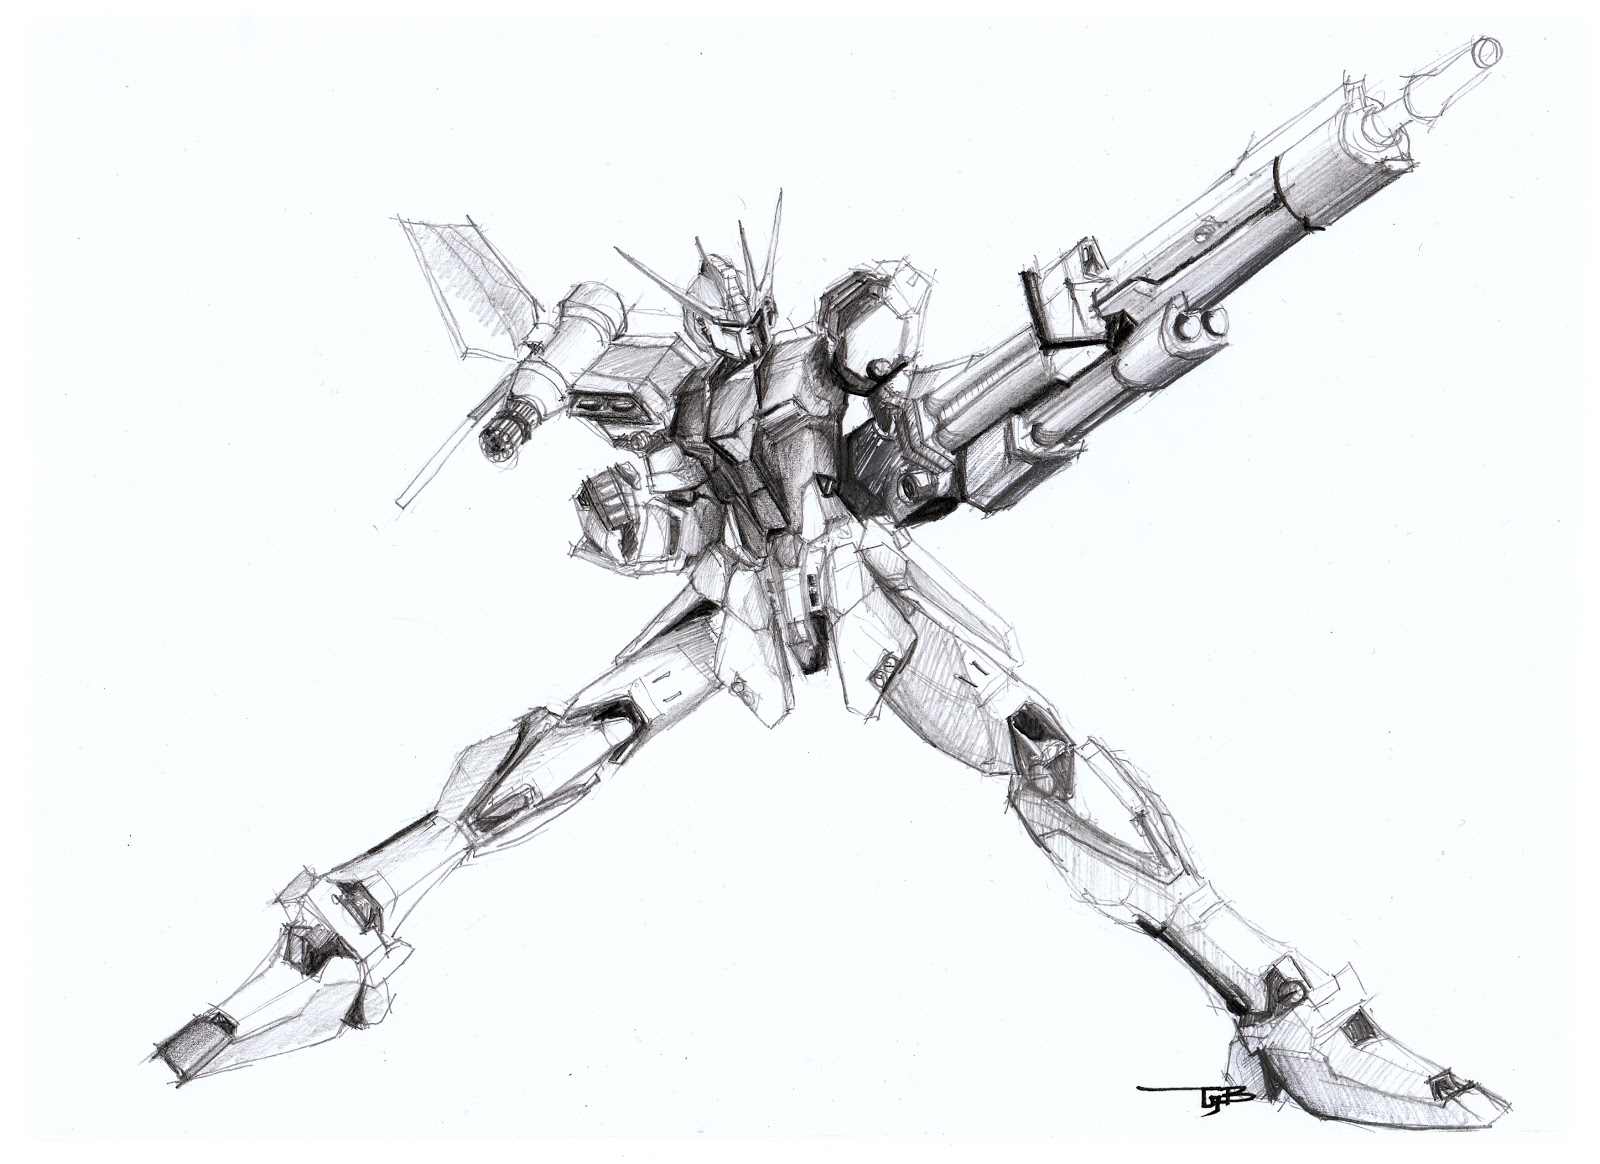 oh yea, Gundam Launcher Strike! hand sketched by me..